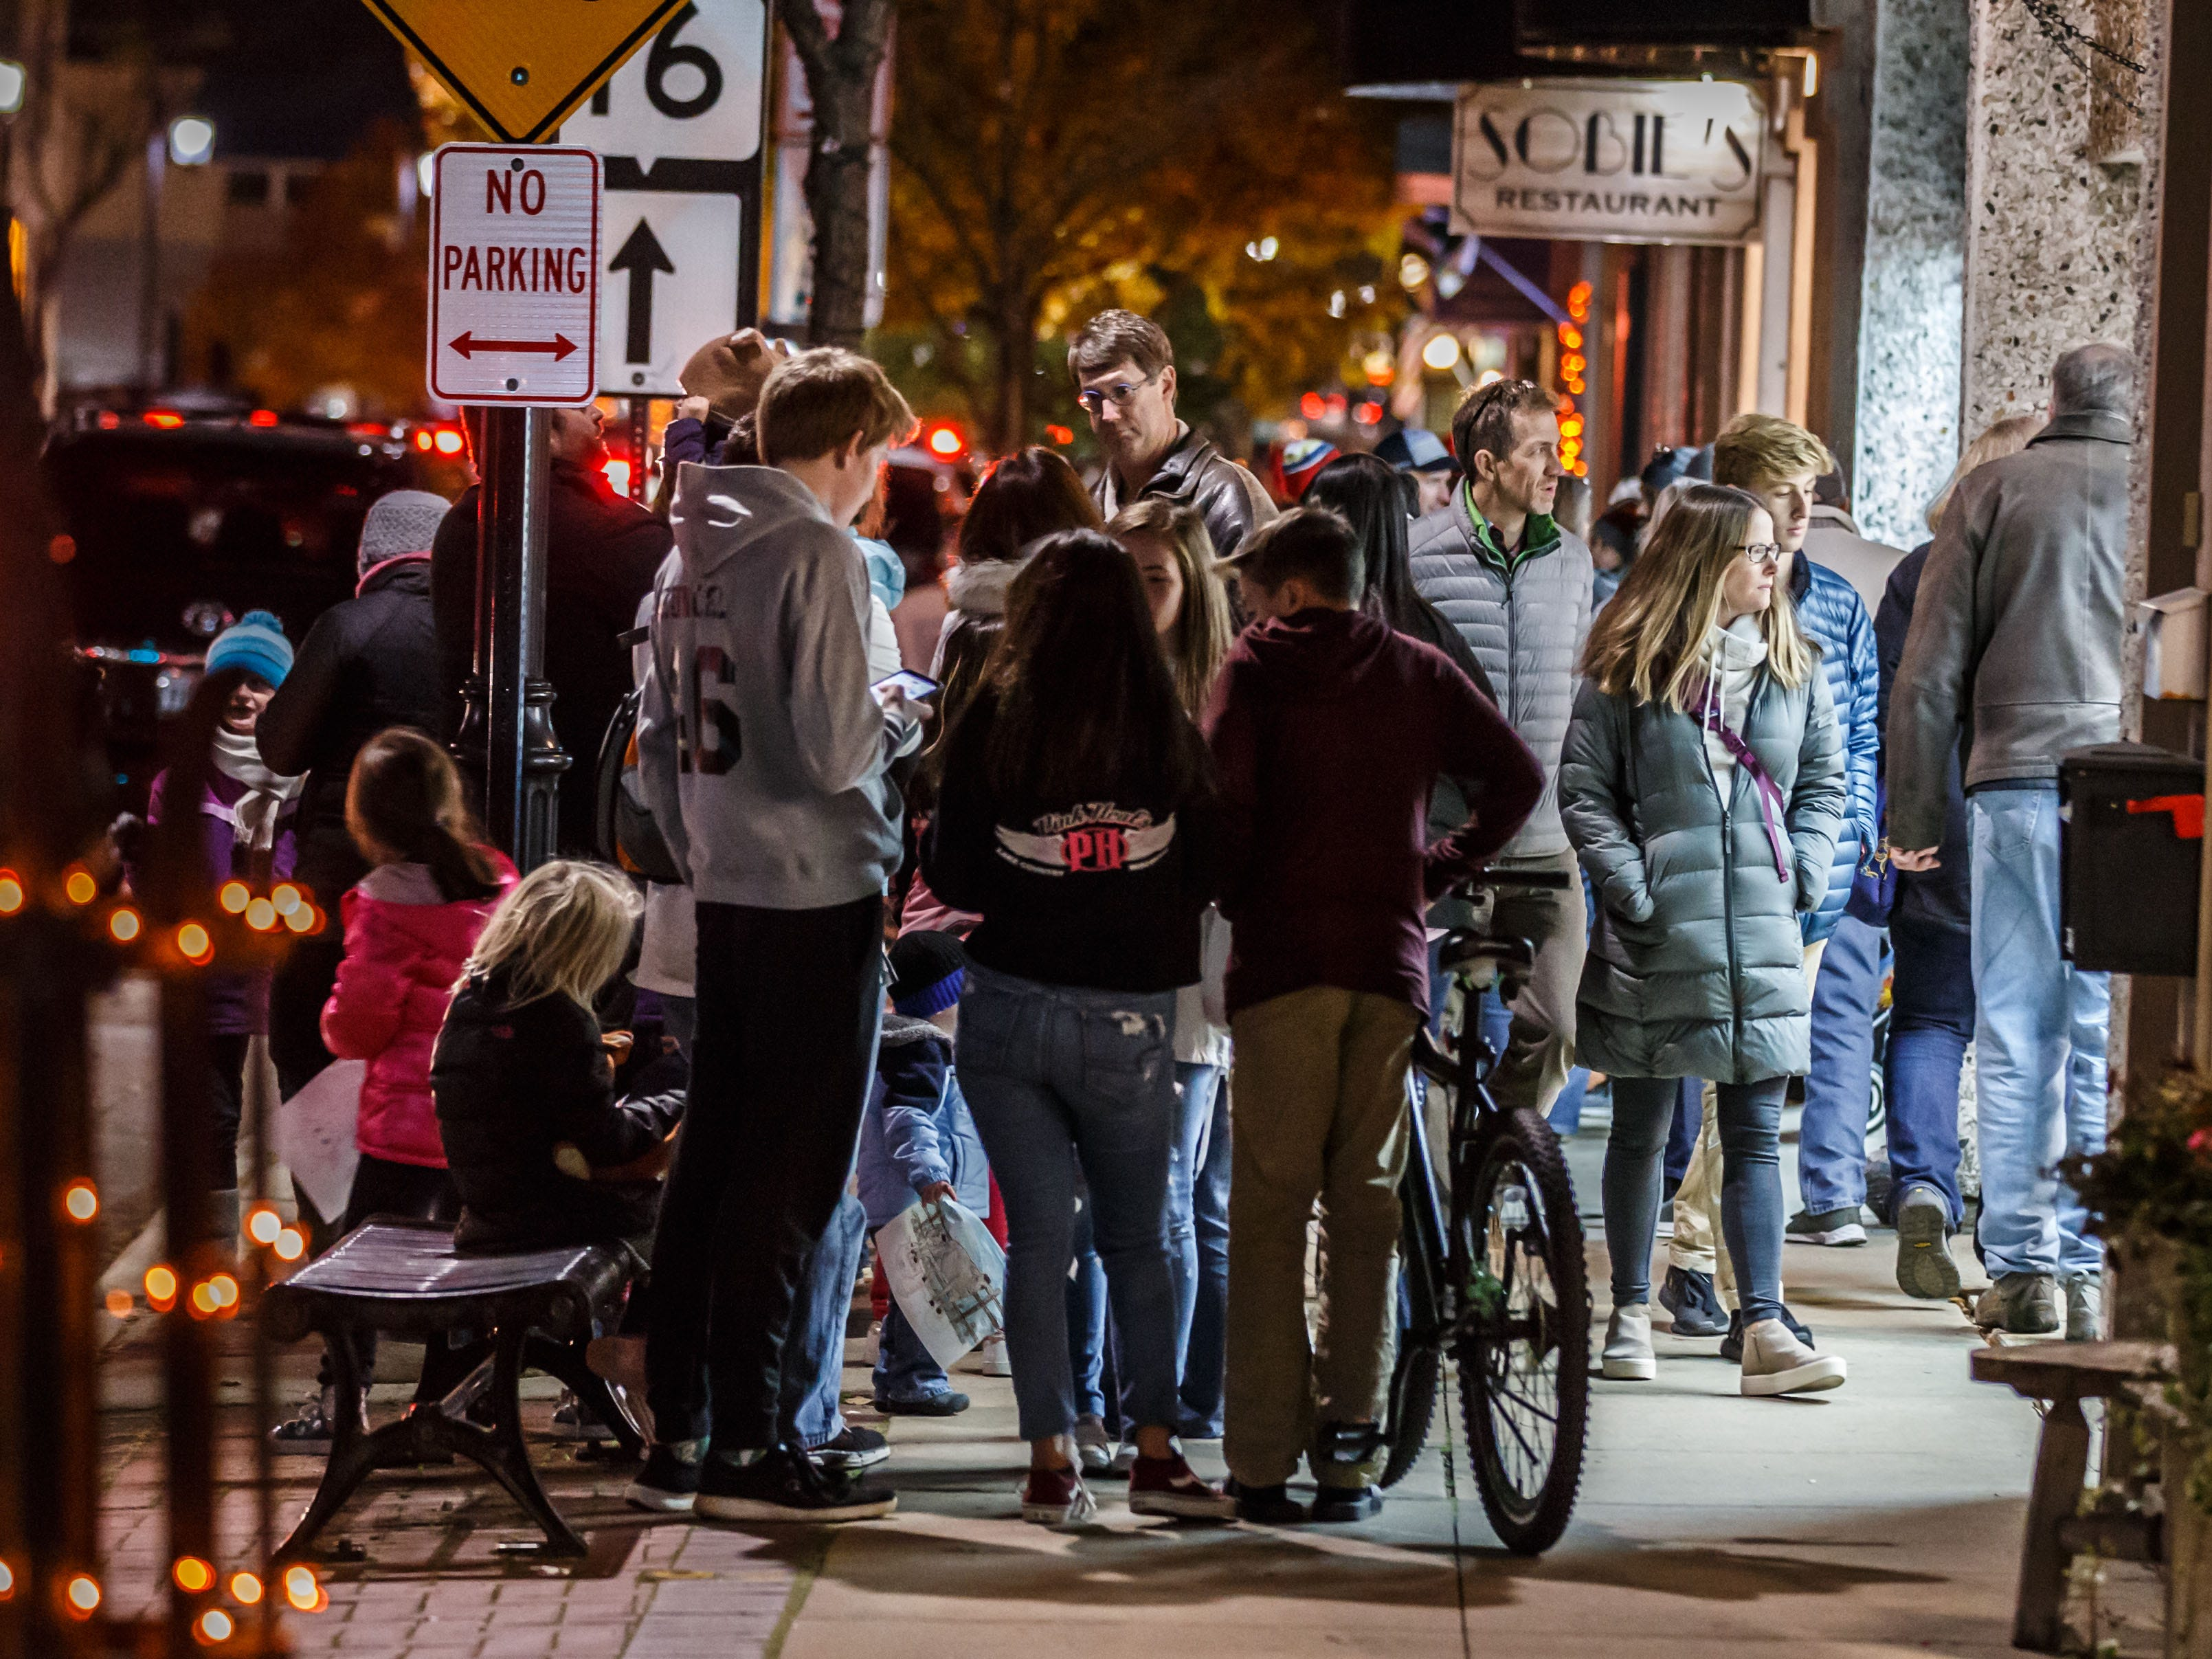 Downtown Oconomowoc bustles with activity during Fall Gallery Night on Friday, Nov. 2, 2018. The annual event, hosted by the Downtown Oconomowoc Business Association, features an evening of art, live music, shopping and more.